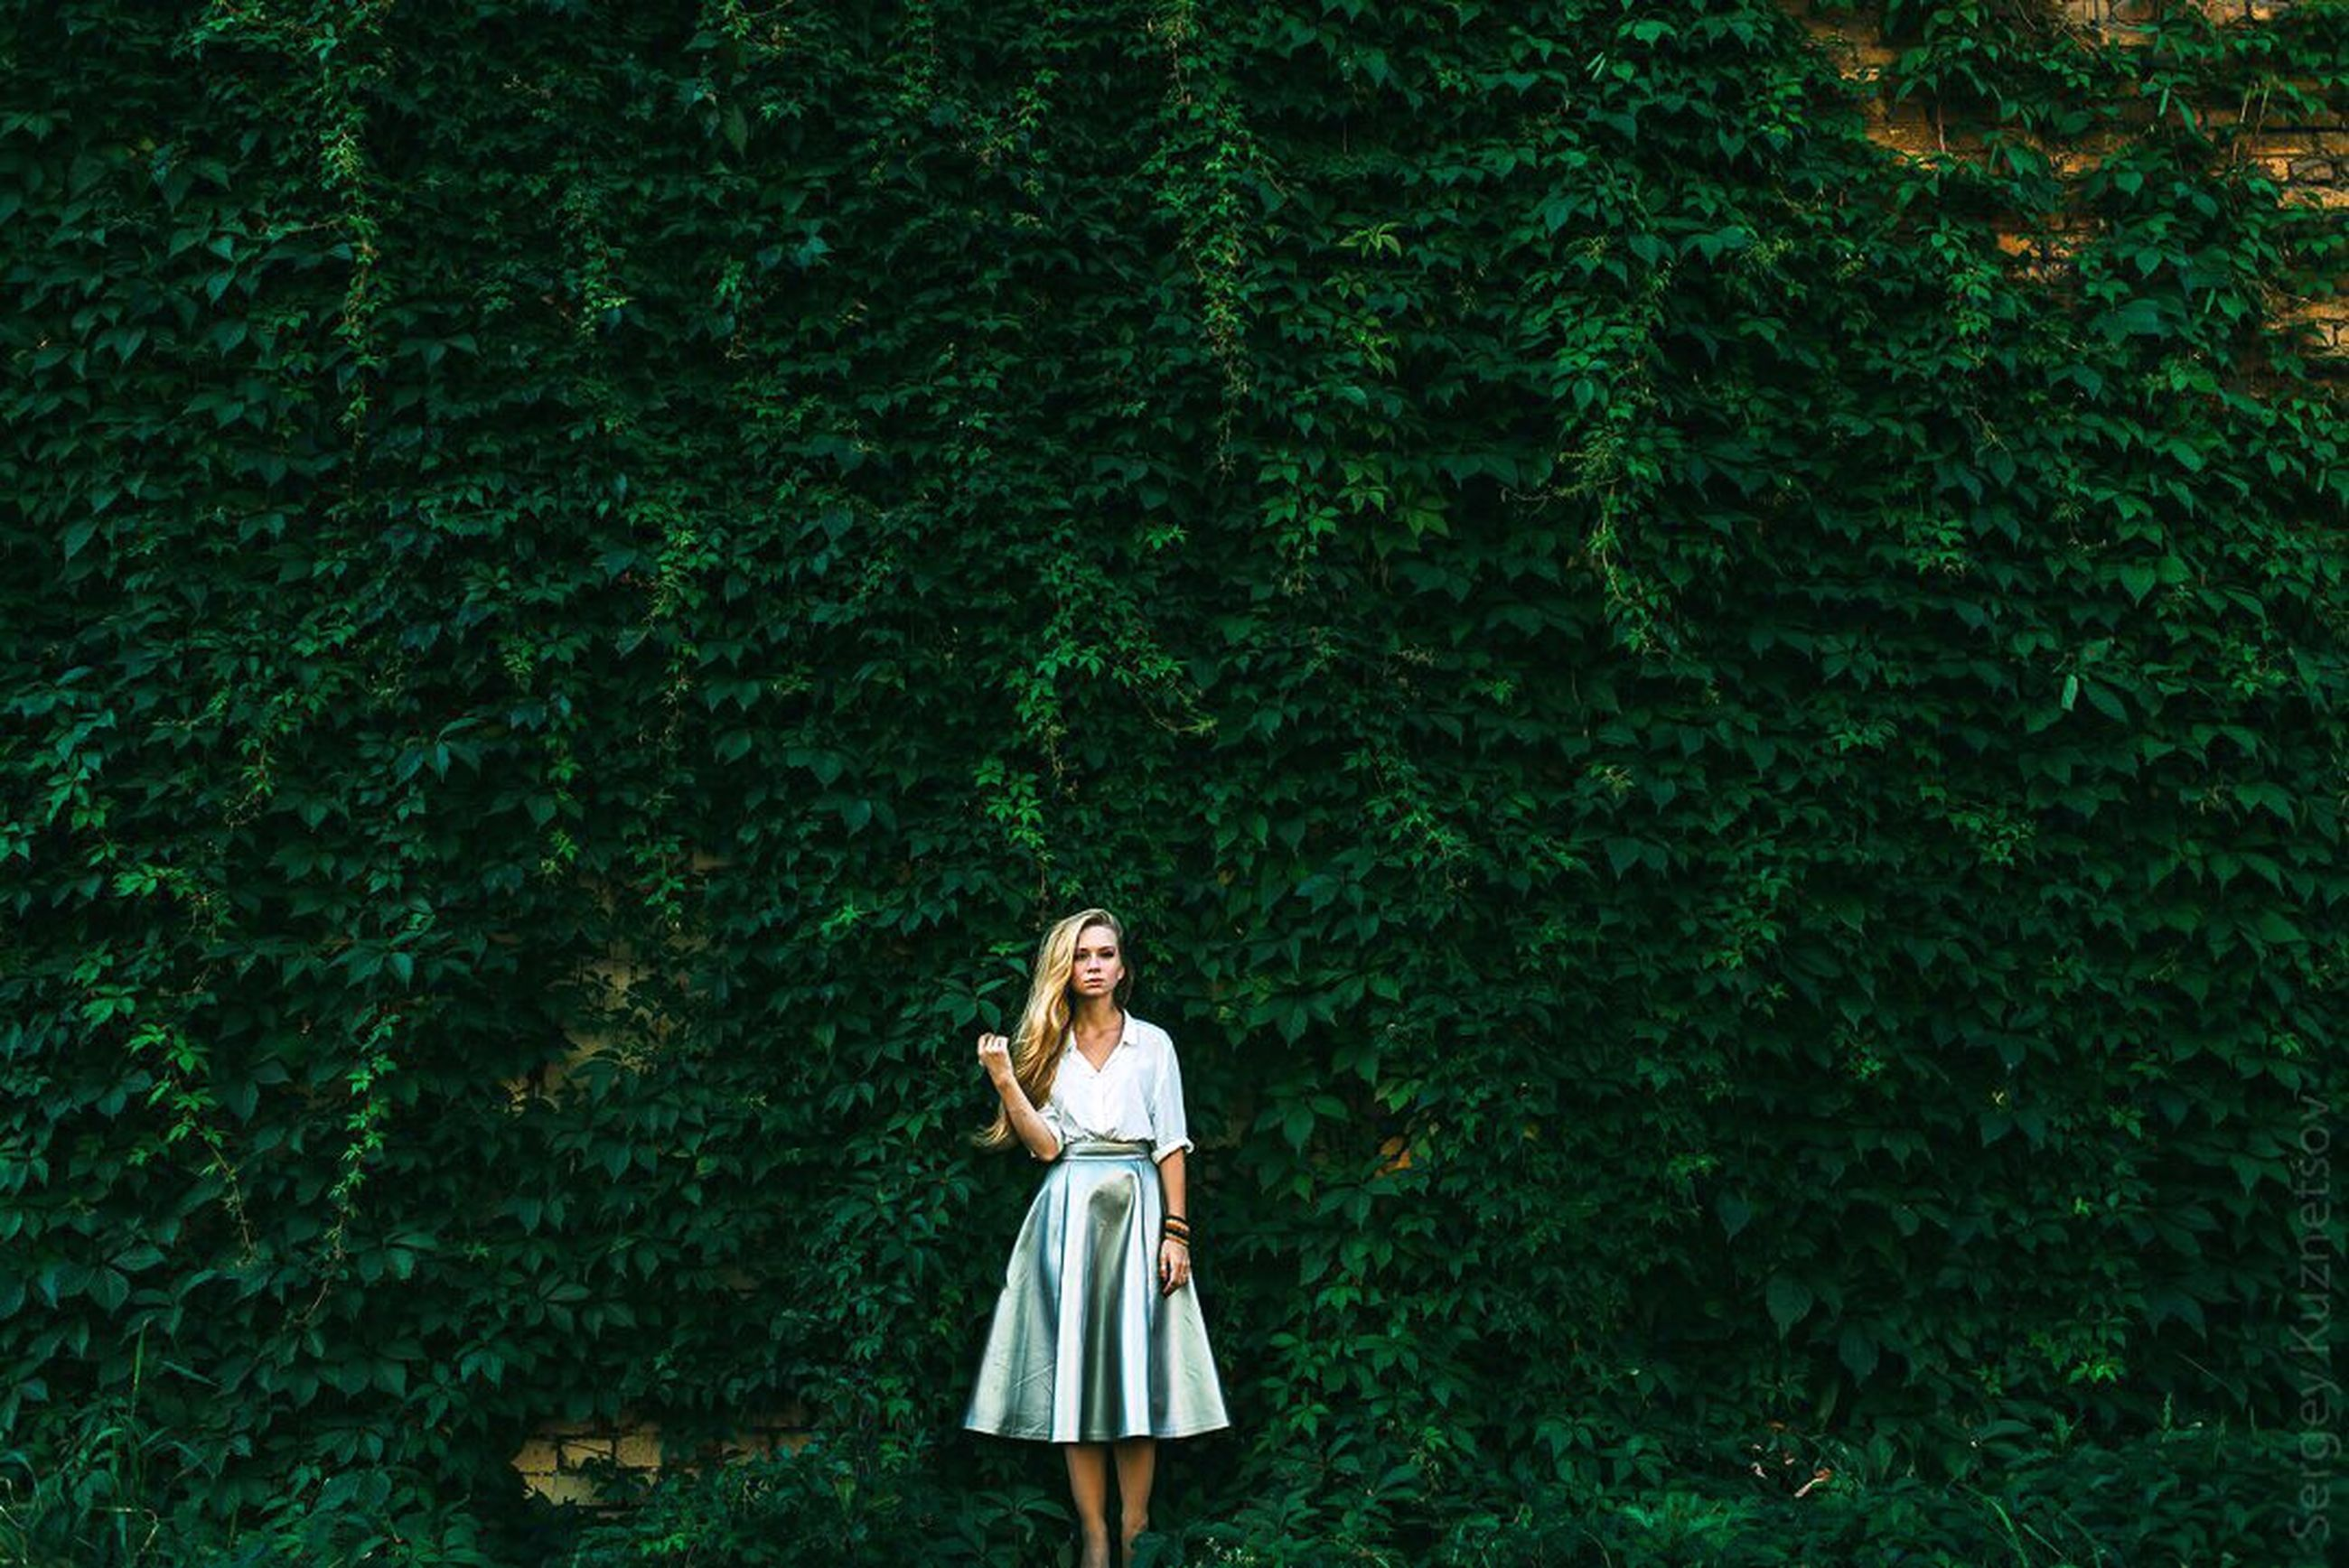 lifestyles, casual clothing, leisure activity, standing, young adult, three quarter length, waist up, full length, person, rear view, tree, grass, young women, front view, long hair, outdoors, day